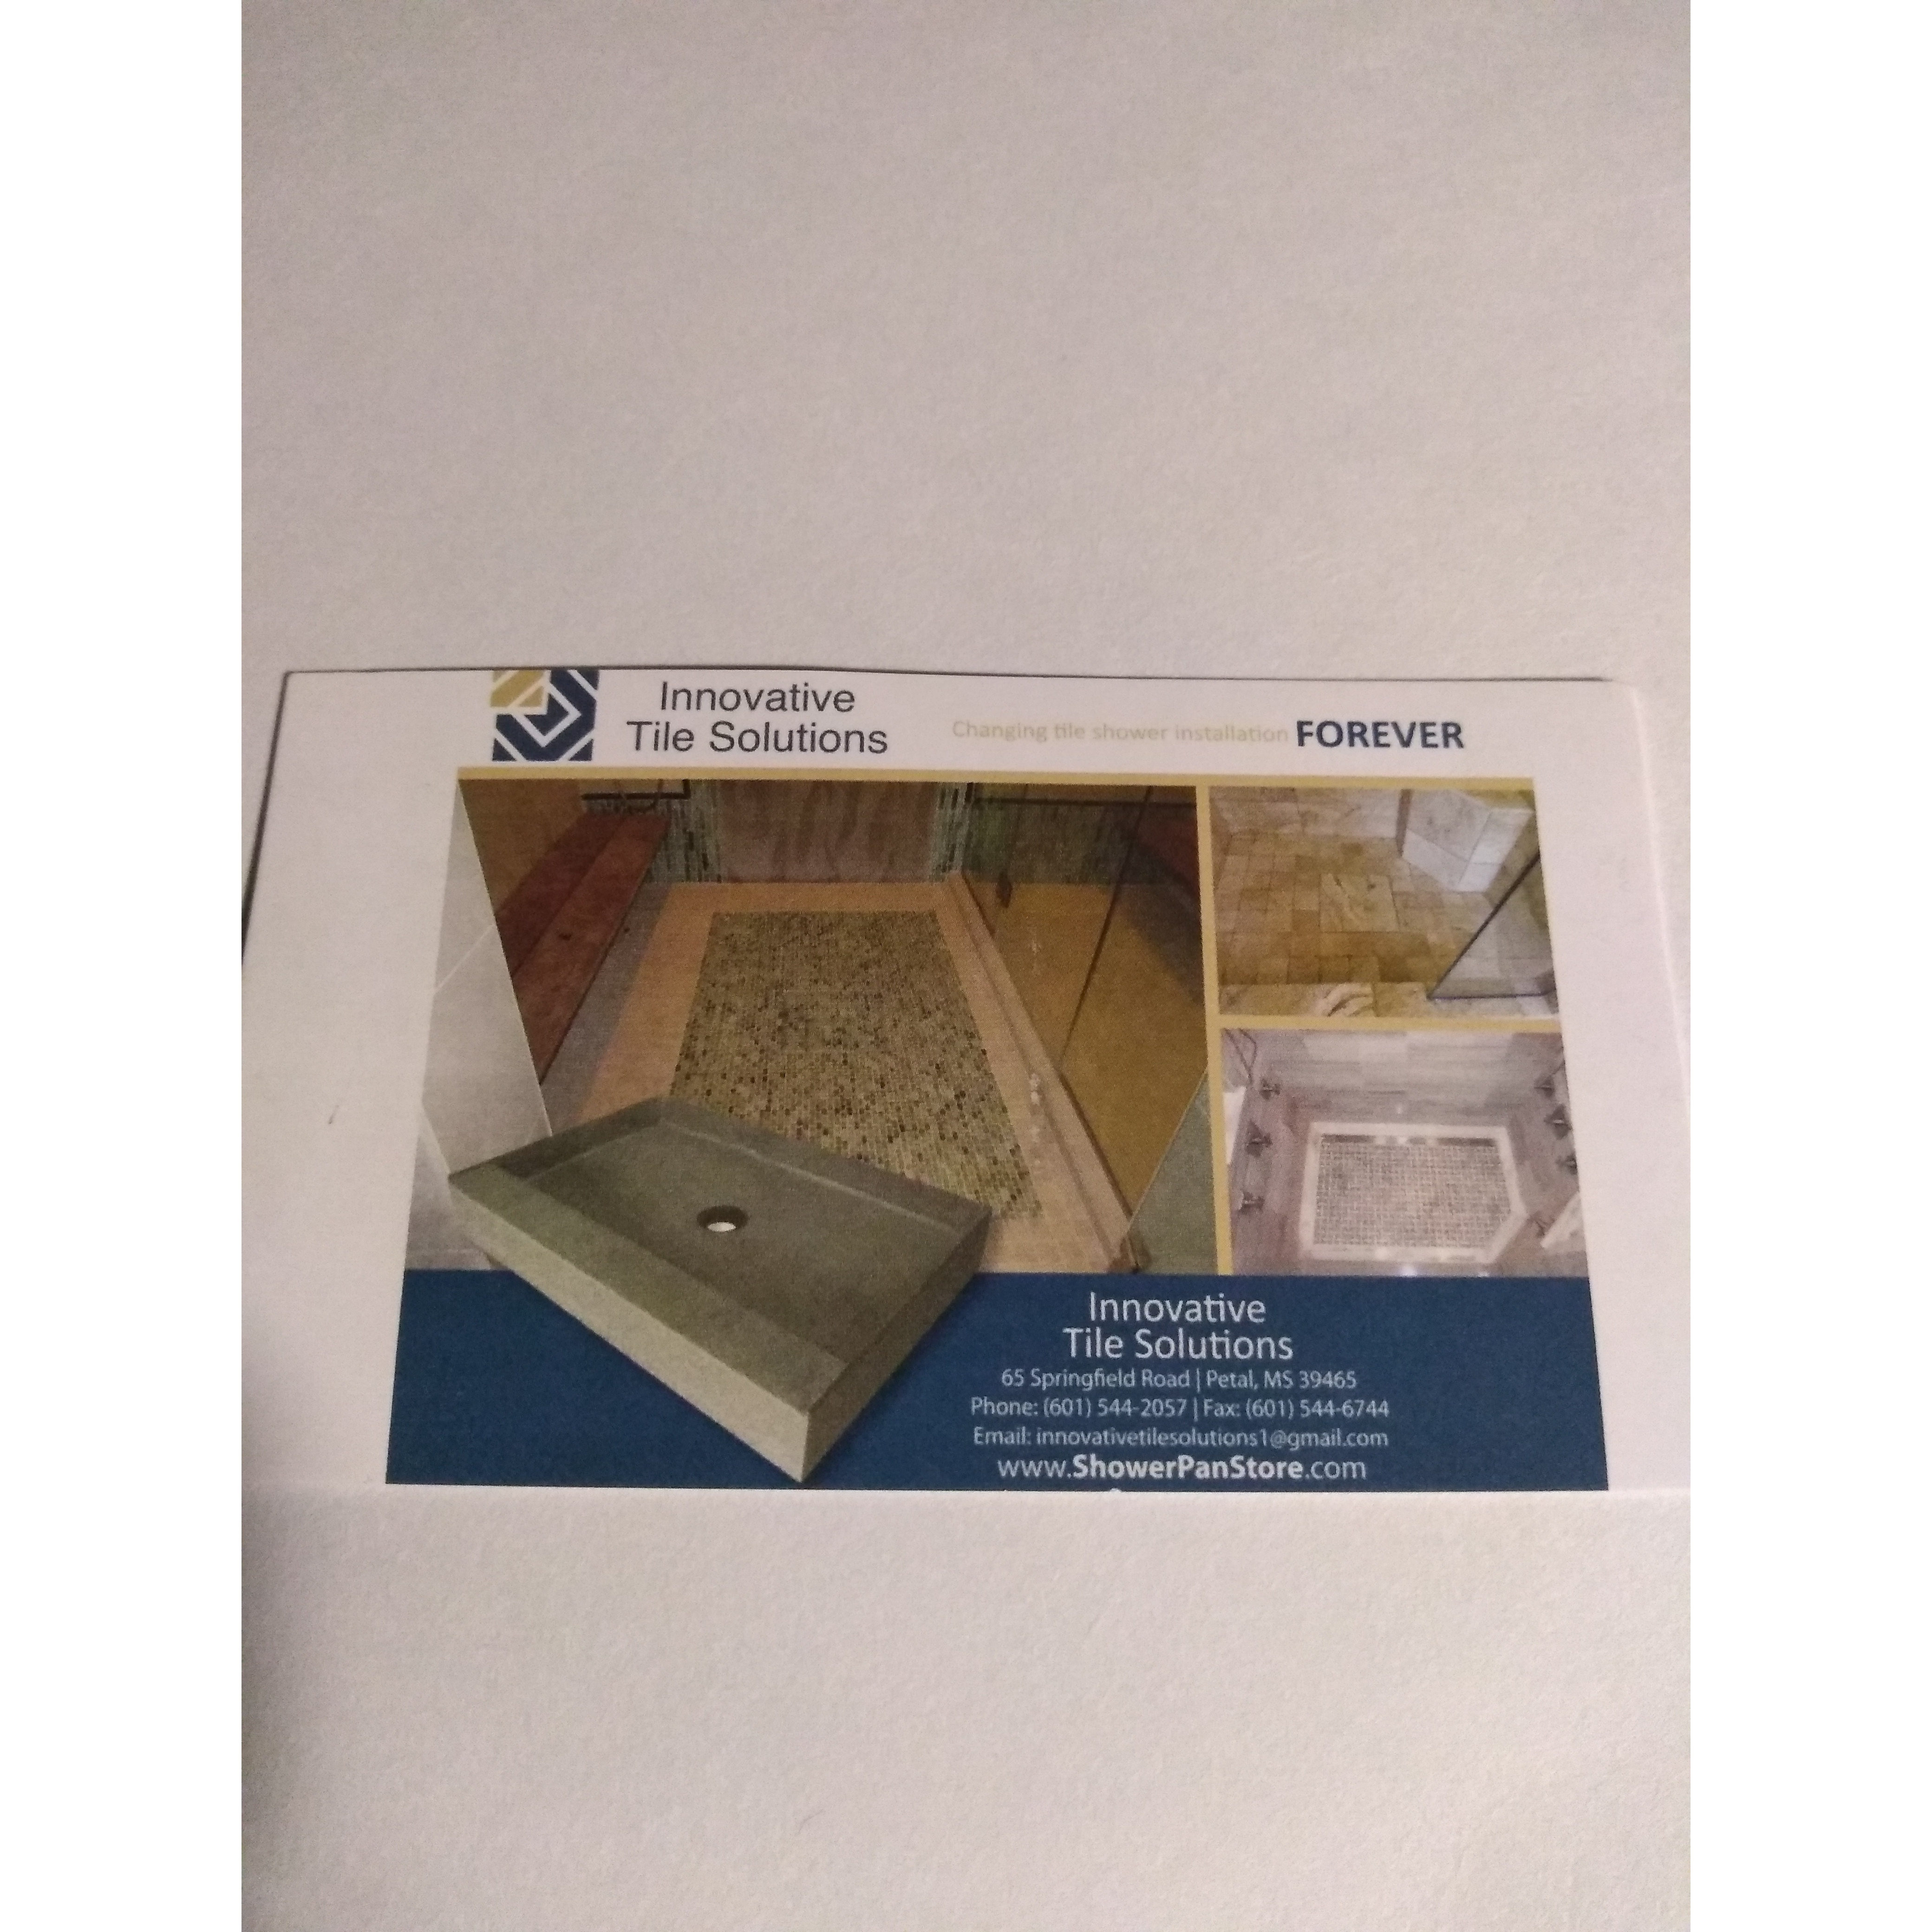 Innovative Tile Solutions image 3